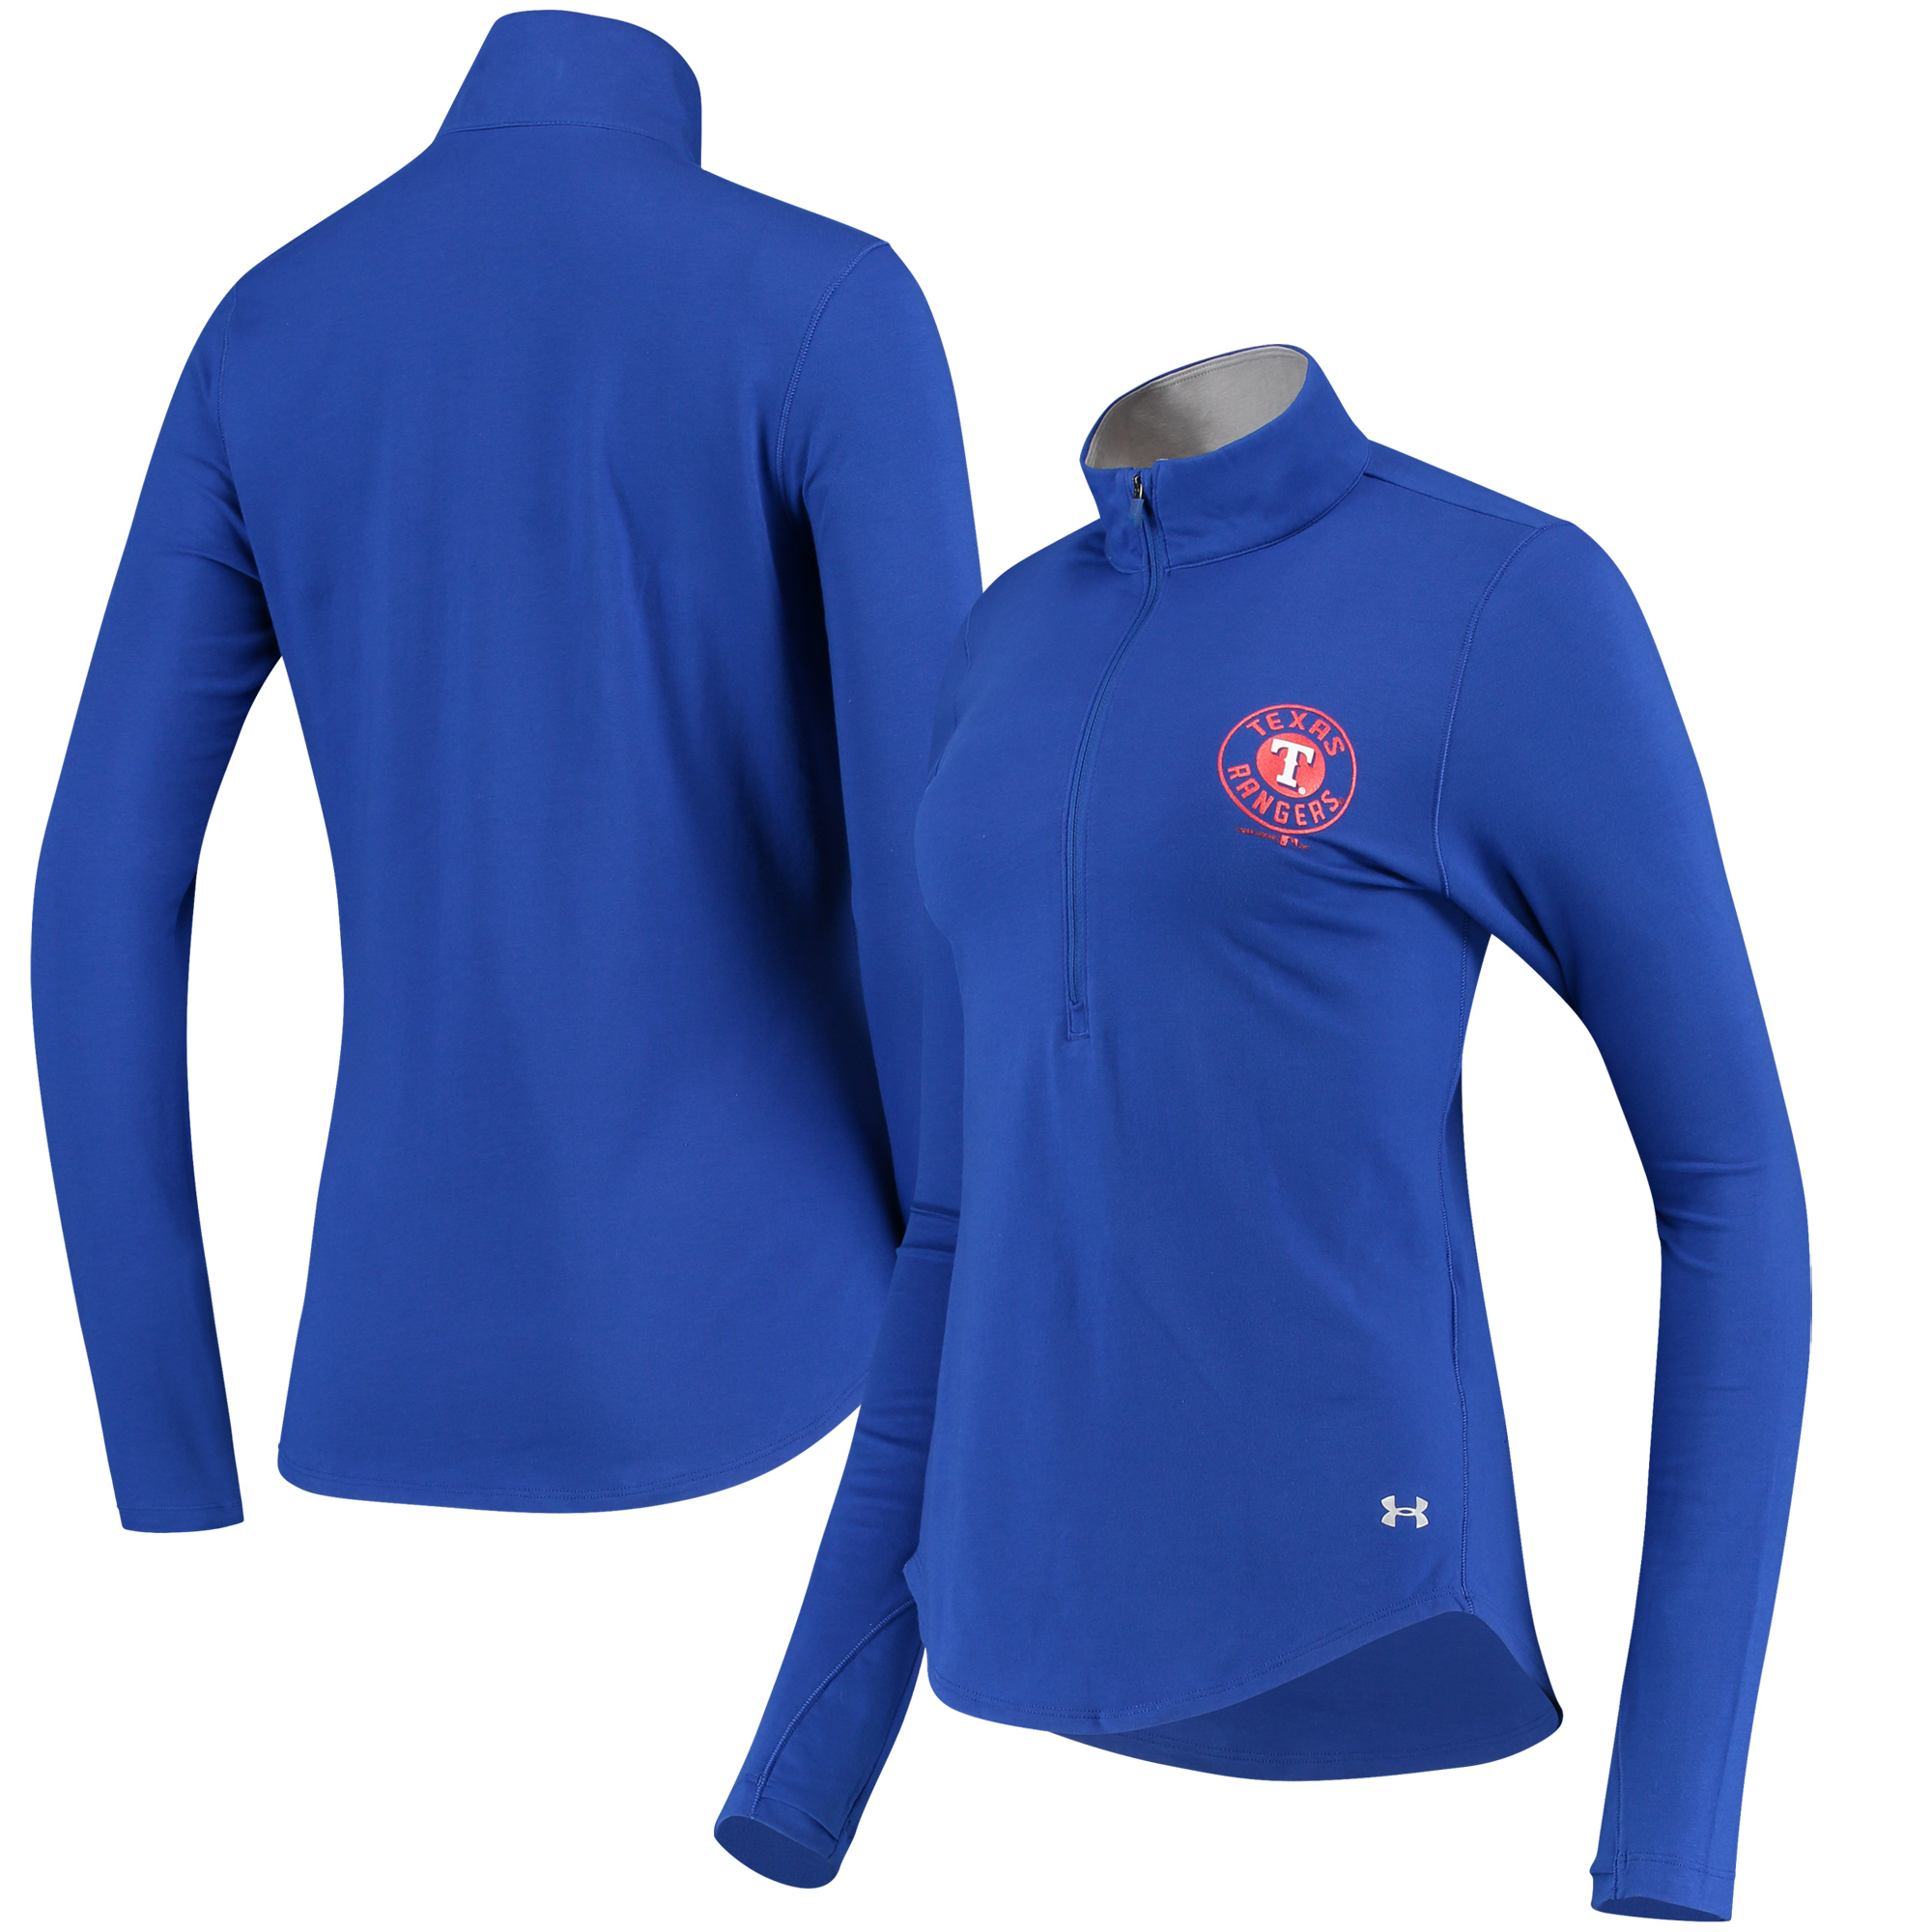 Texas Rangers Under Armour Women's Charged Cotton Half-Zip Pullover Jacket - Royal